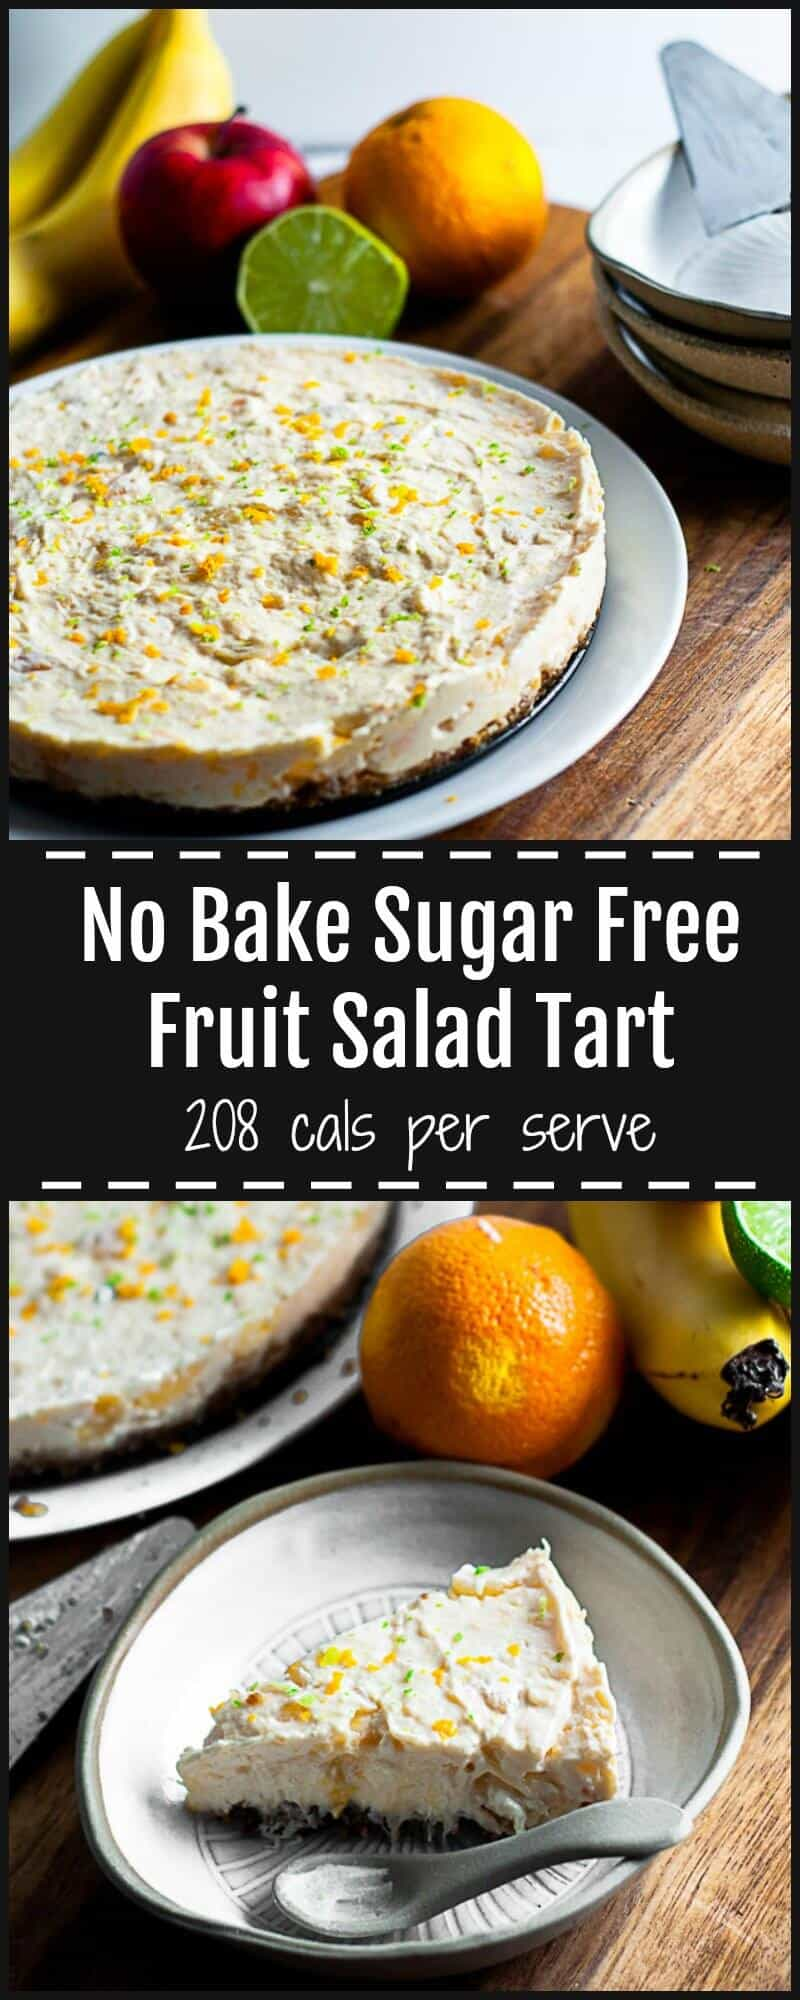 Sugar Free, No Bake Fruit Salad Tart - perfect for a healthy dinner party dessert.